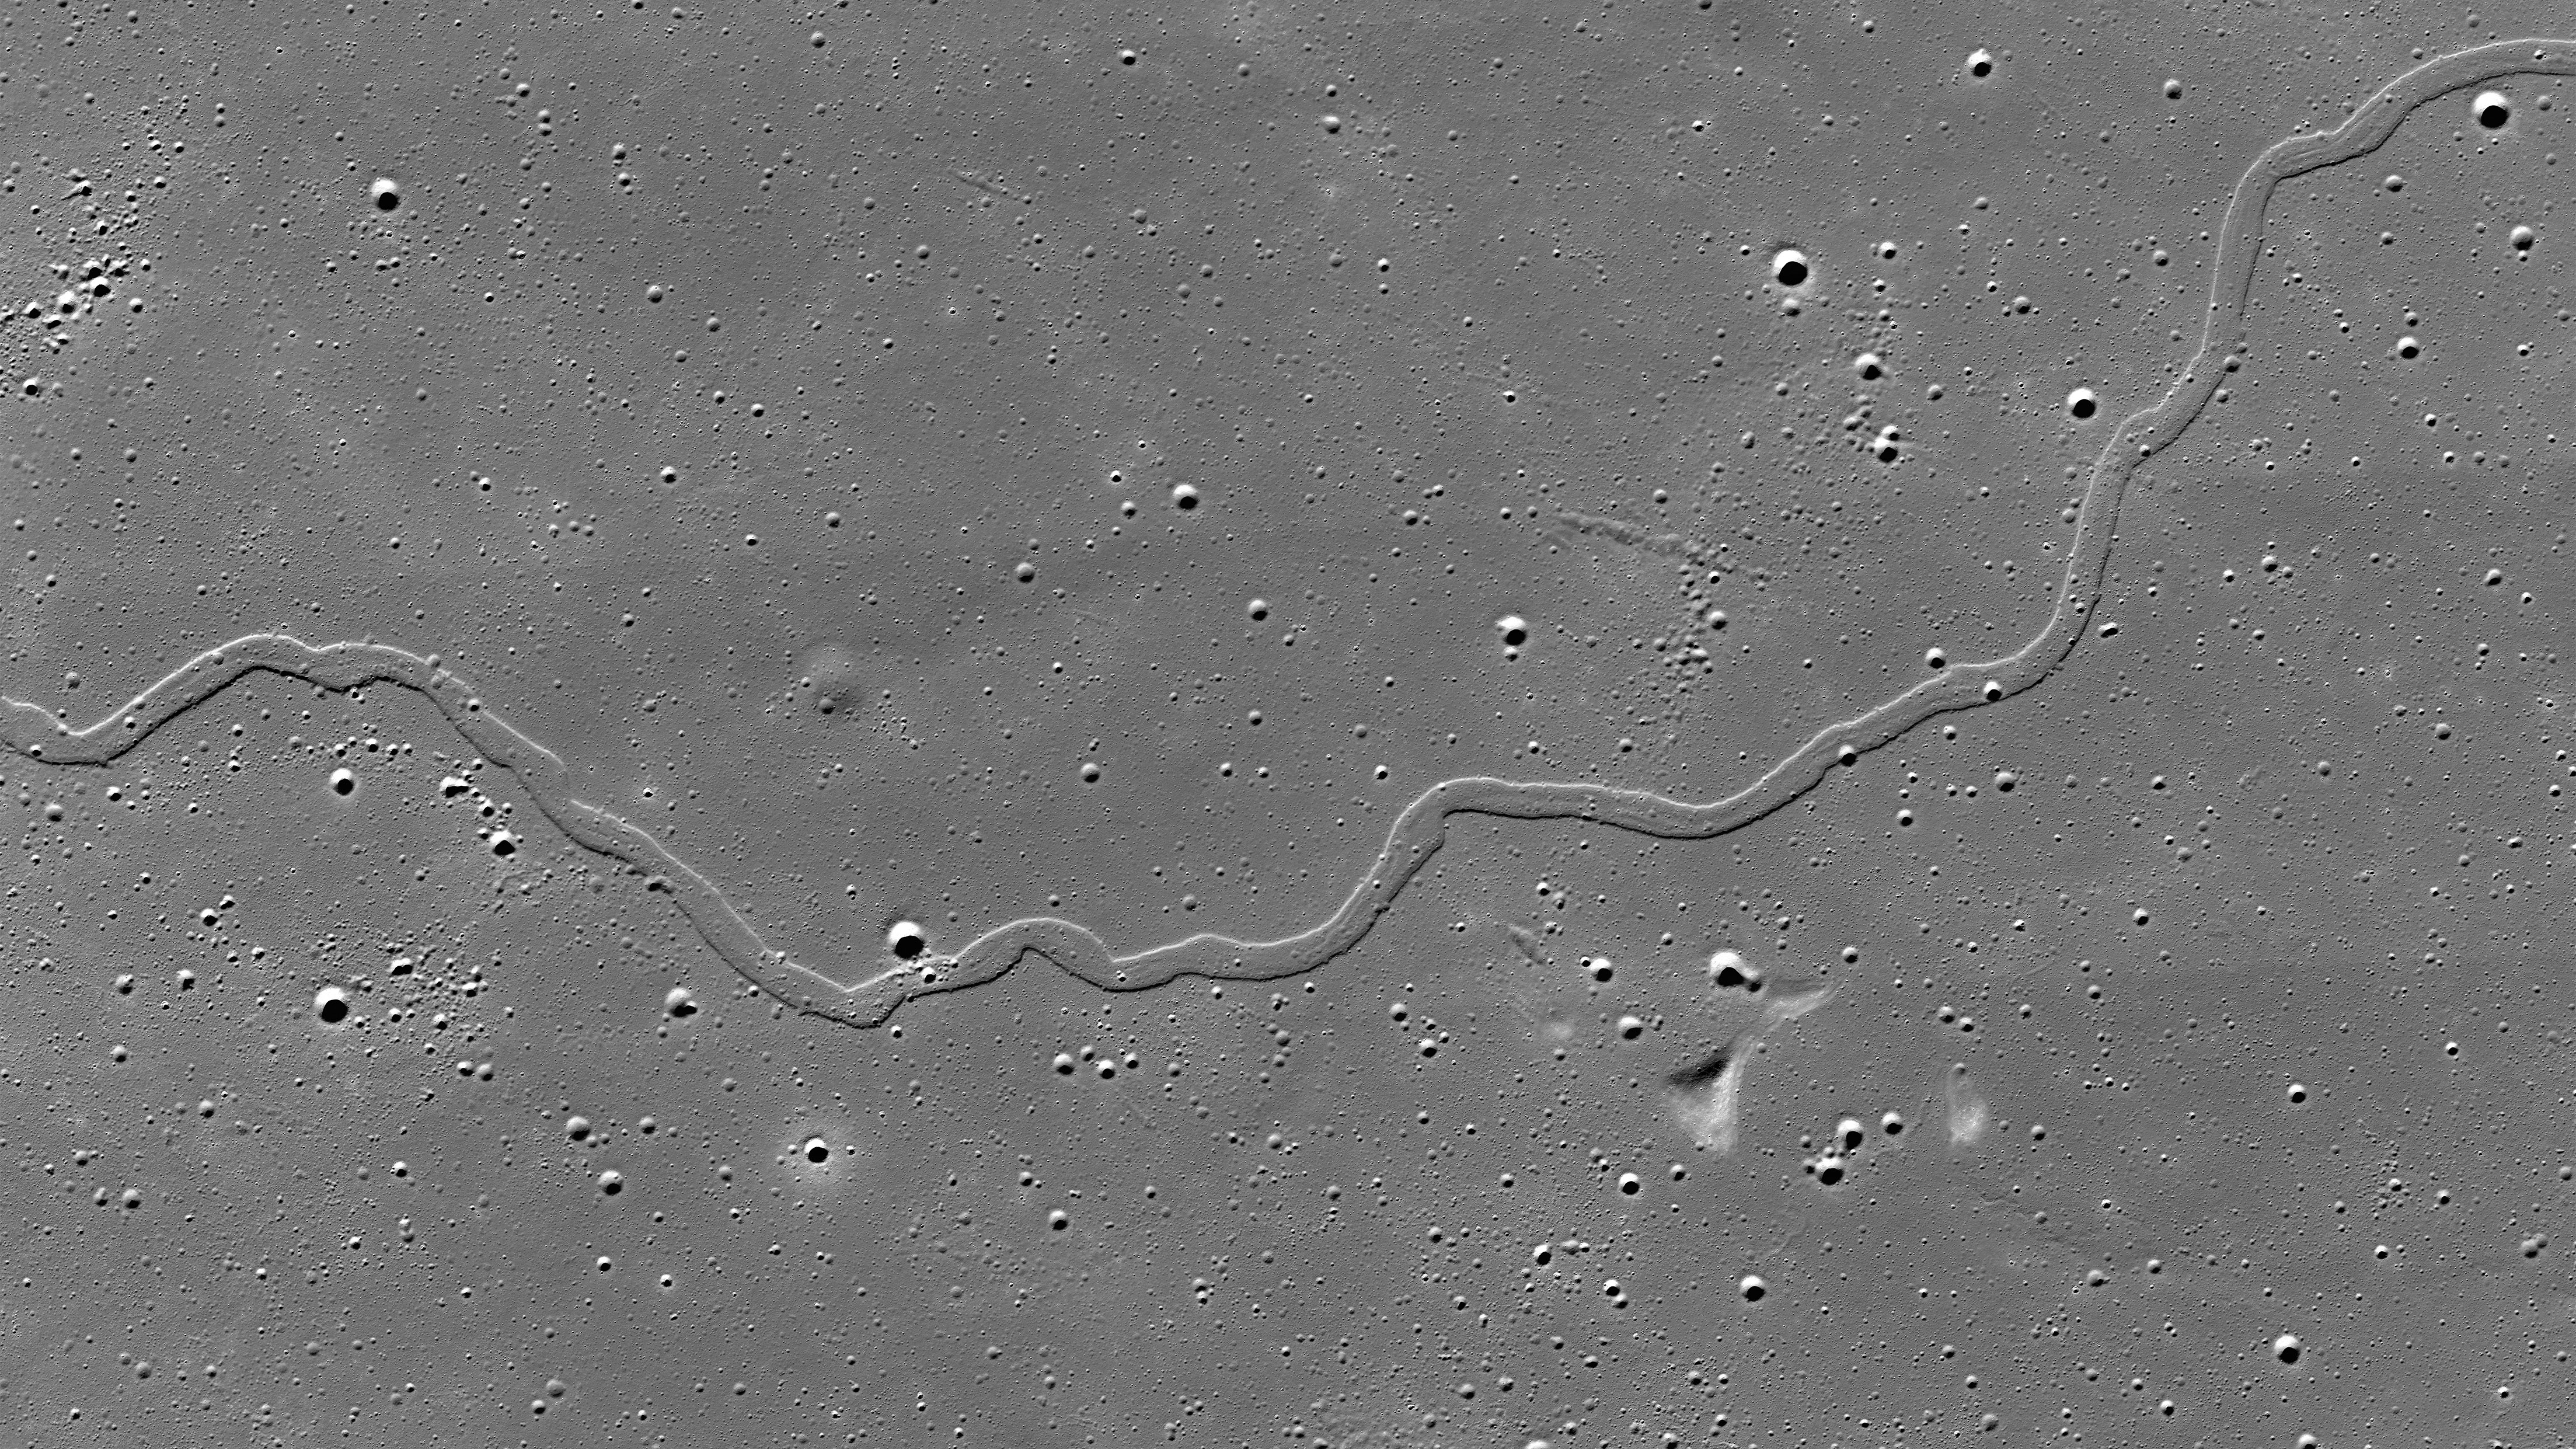 section of Rima Sharp captured by the LRO